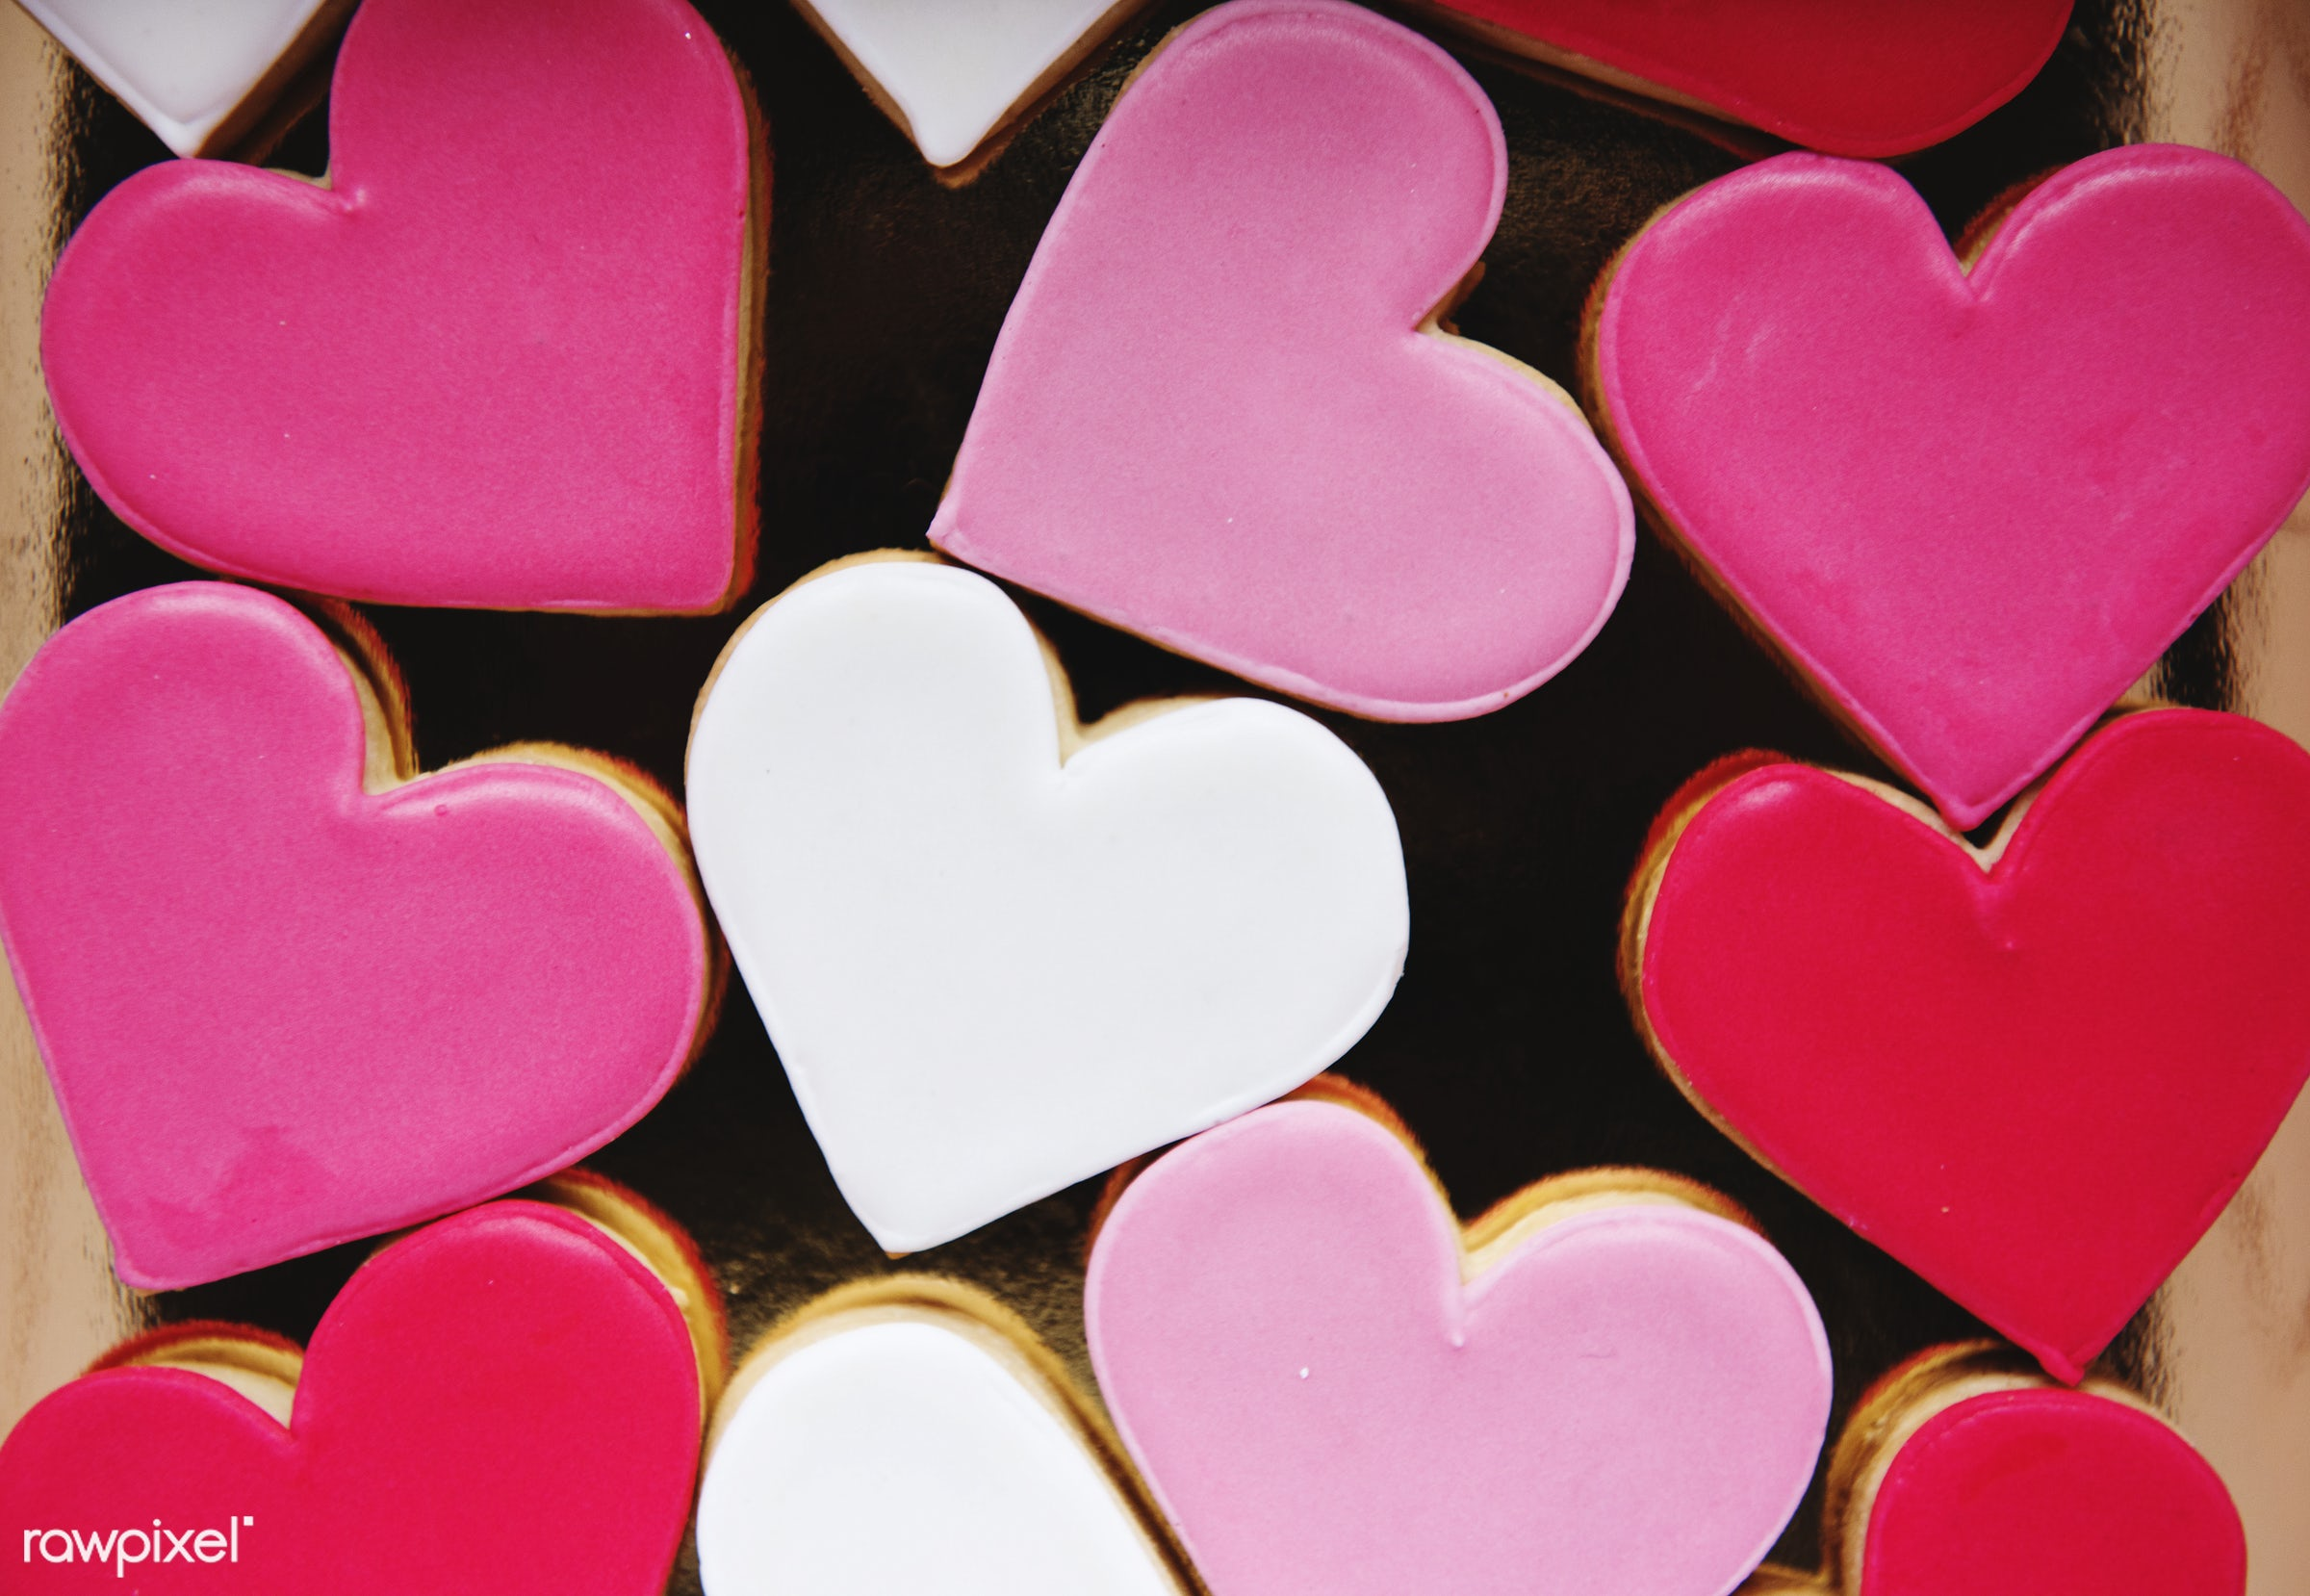 Colorful Cookie Hearts Shape Decorative Love Smitten Valentine - valentine, heart, love, pink, couple, family, red,...